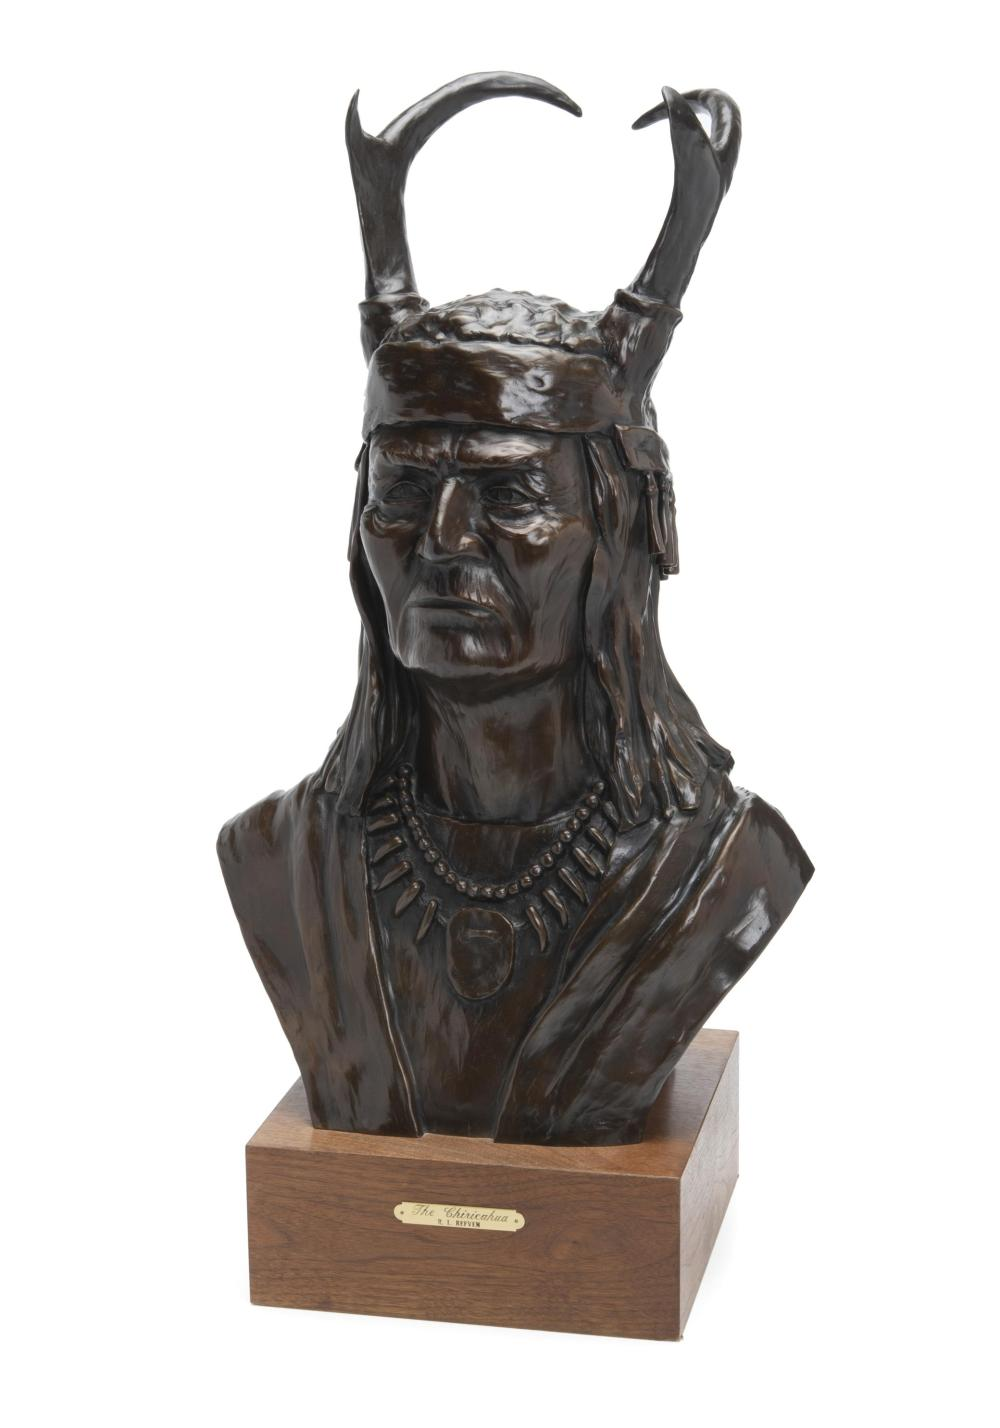 "Robert L. Refvem, (b. 1933, American), ""The Chiricahua,"" 1983, Patinated bronze on wood base, Overall: 27.75"" H x 15"" W x 10"" D"